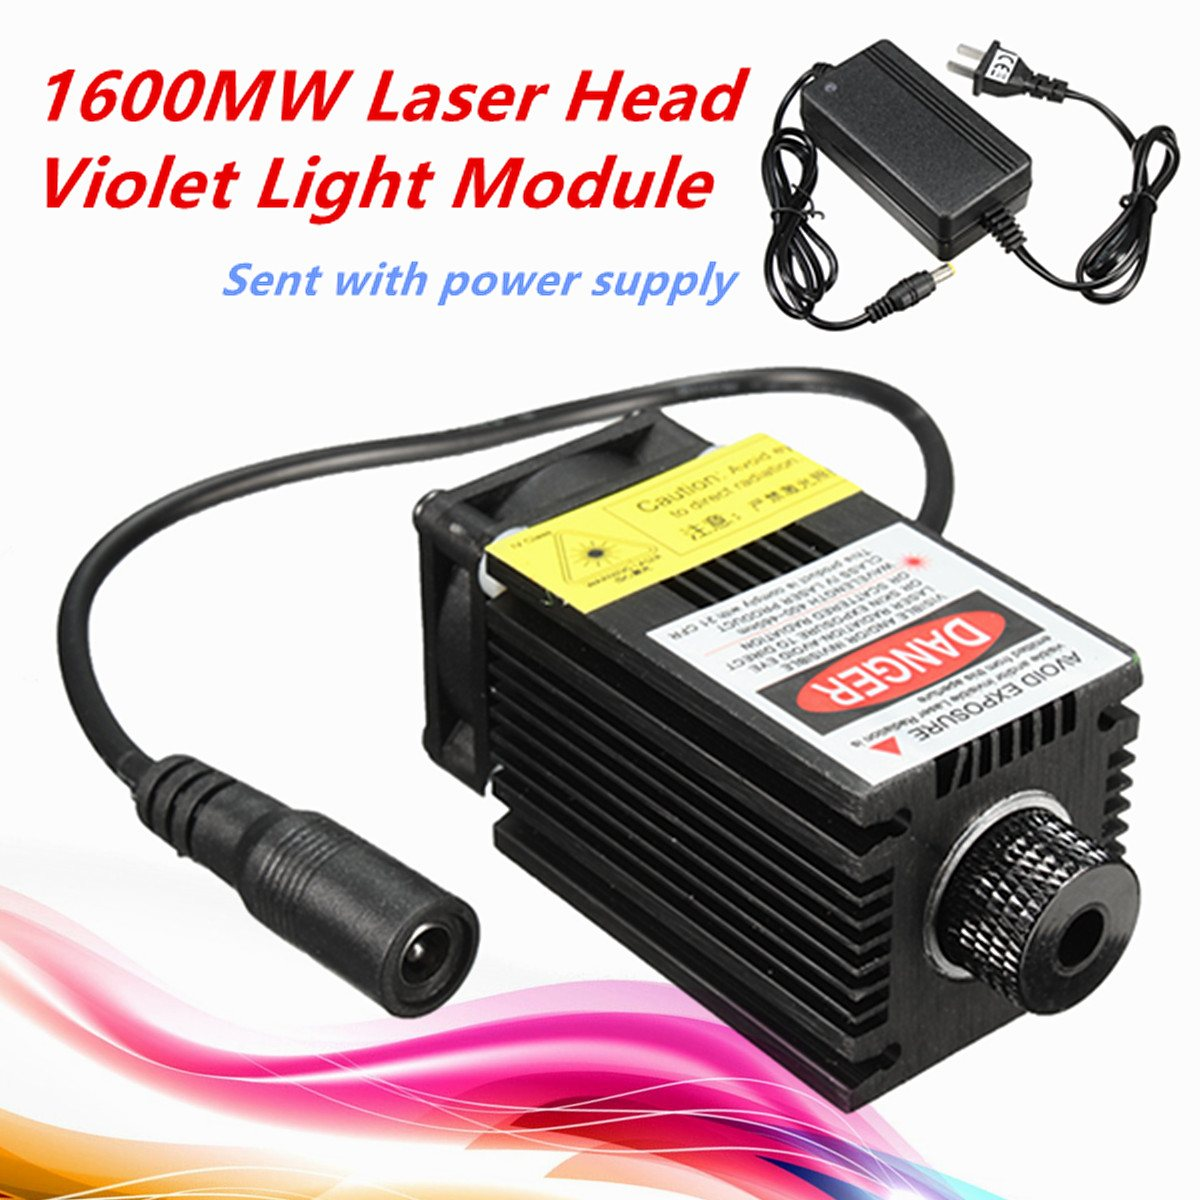 1Pcs New 12V 1.6W 1600MW Laser Module Engraving Head For DIY USB CNC Cutting Printing Machine + Power Supply eighty percent new laser head kss 151a